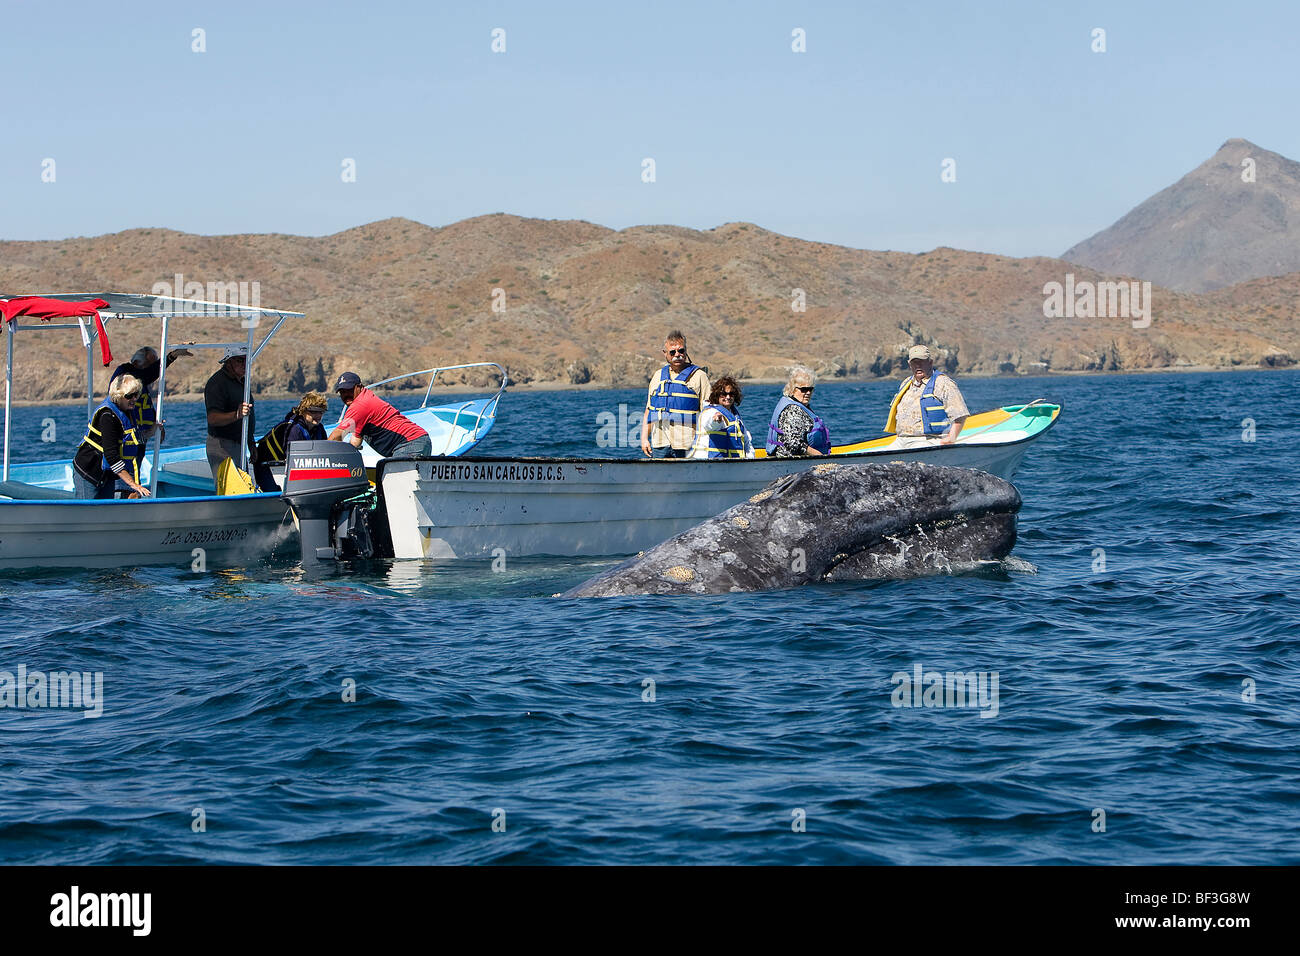 Gray Whale, Grey Whale (Eschrichtius robustus, Eschrichtius gibbosus). Whale-watchers with whale. - Stock Image